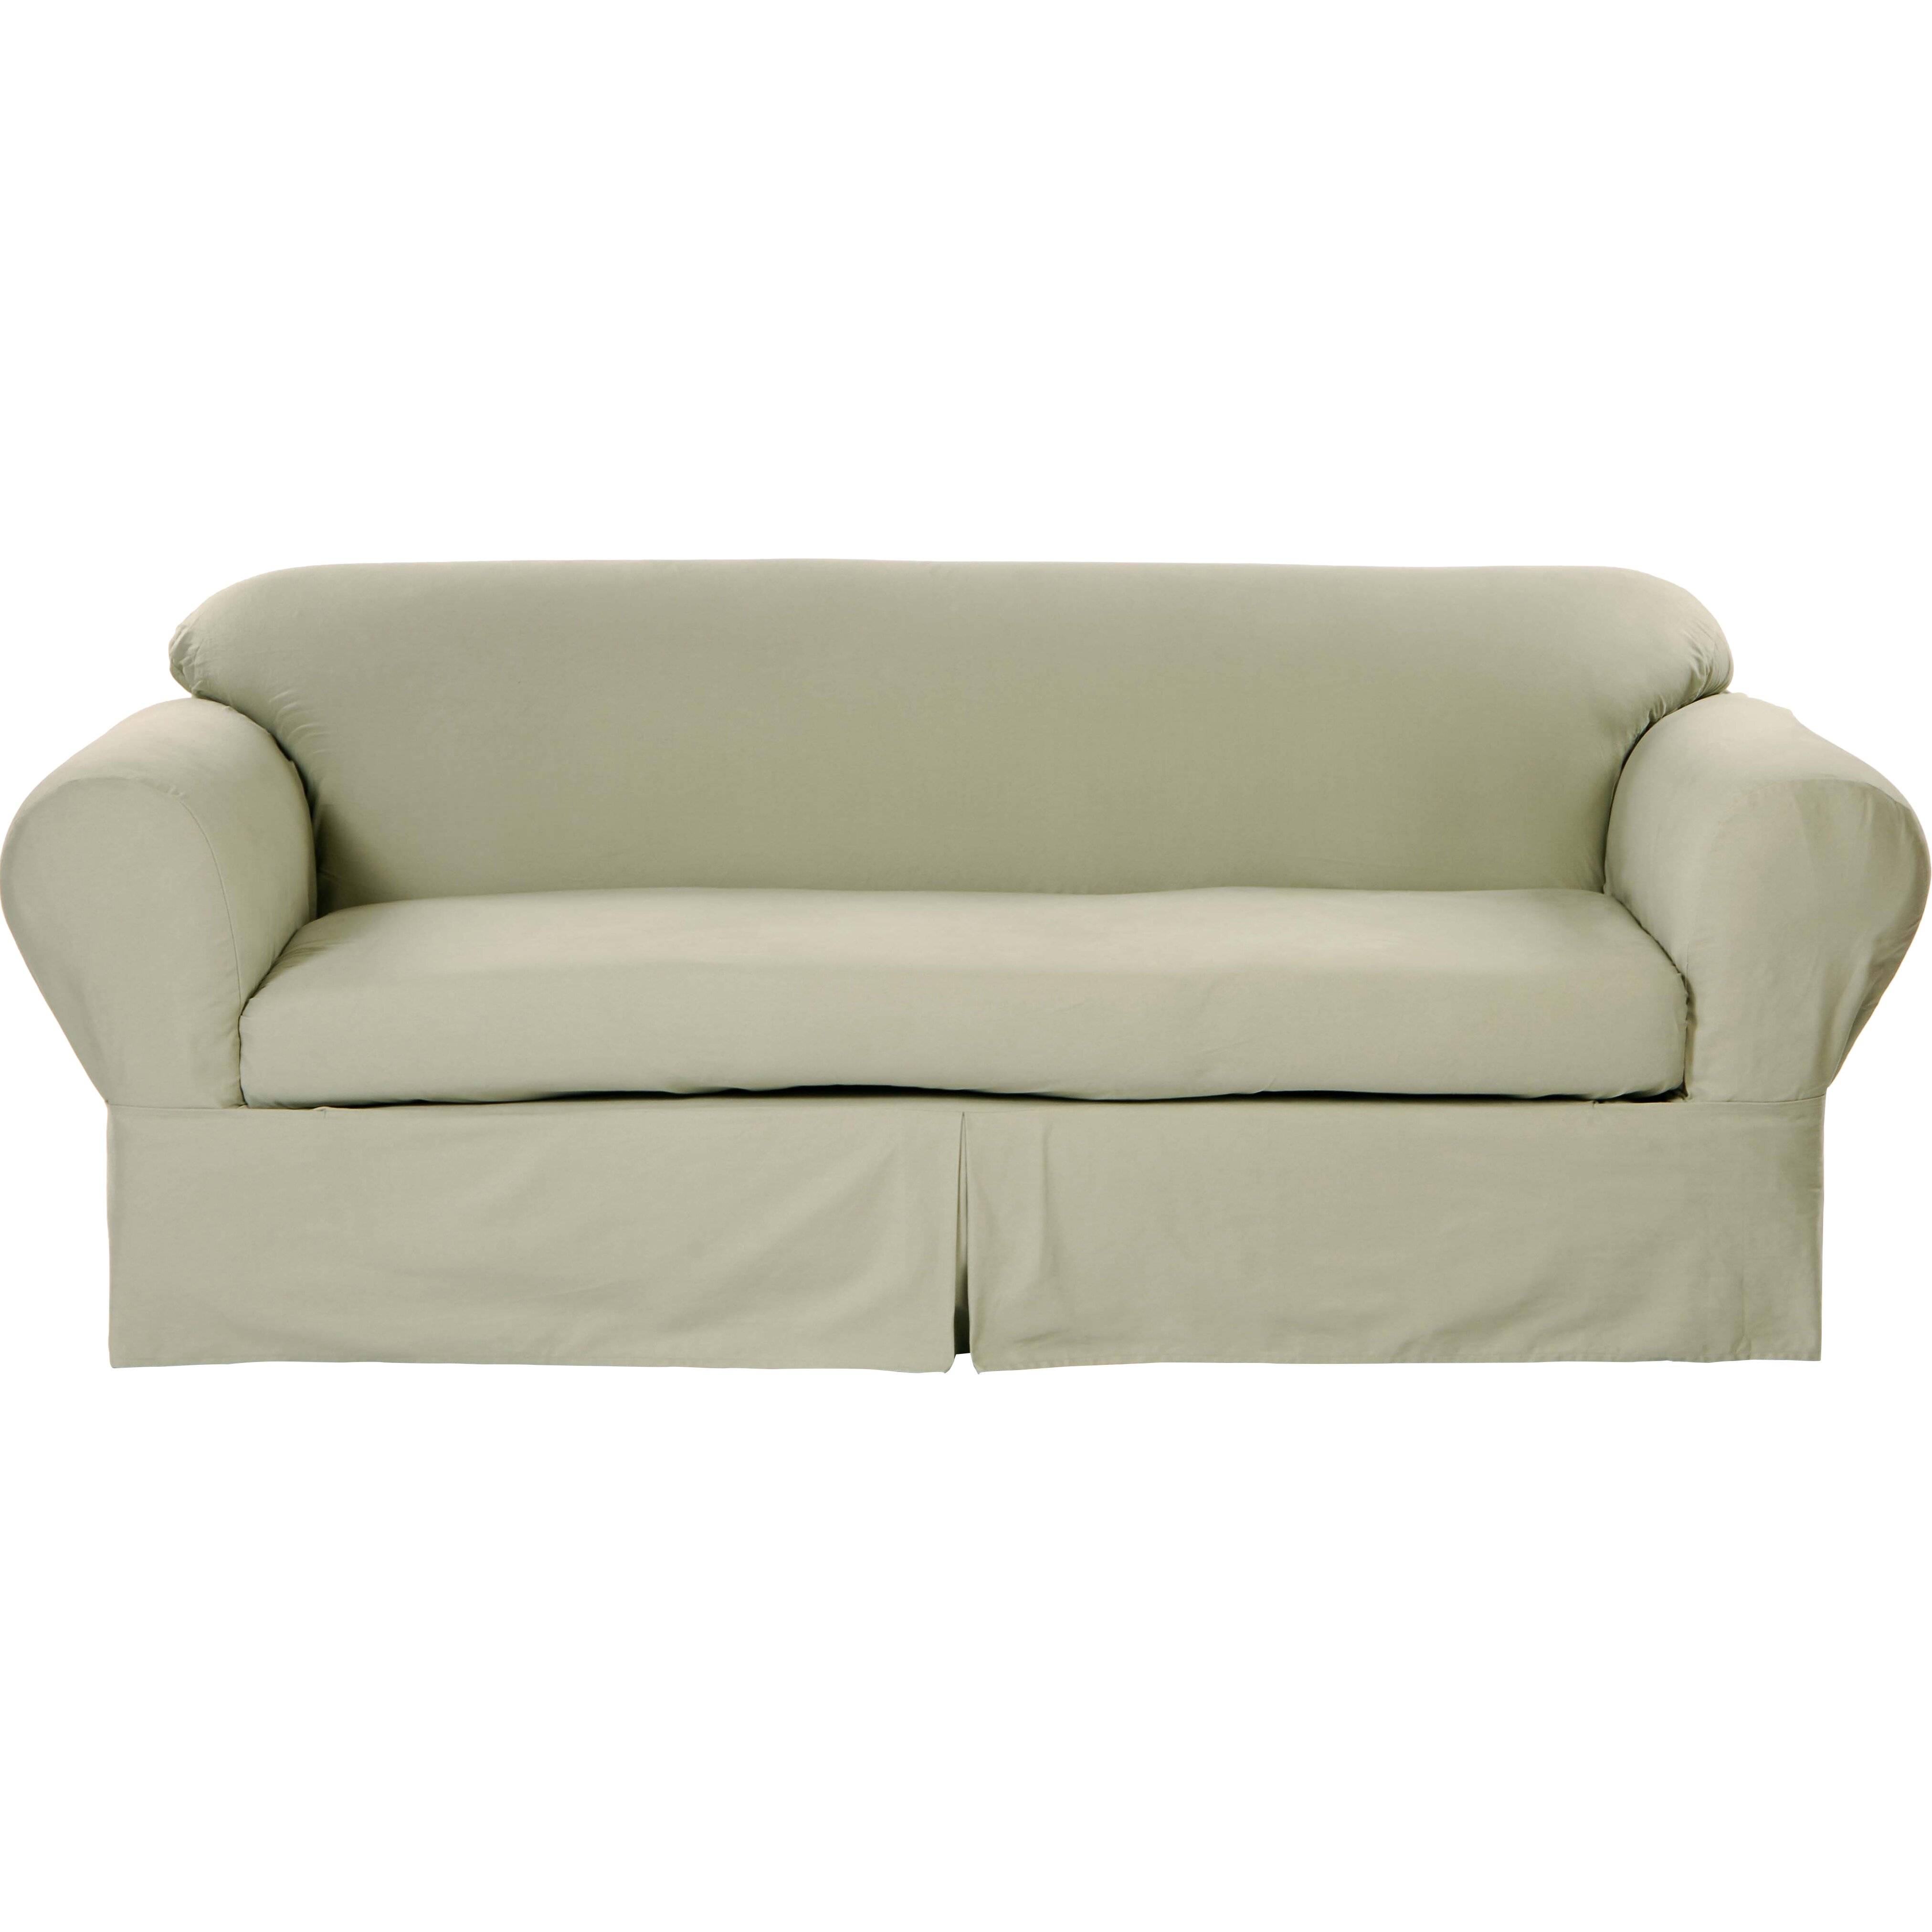 Classic slipcovers brushed twill loveseat slipcover reviews wayfair Loveseat slipcover